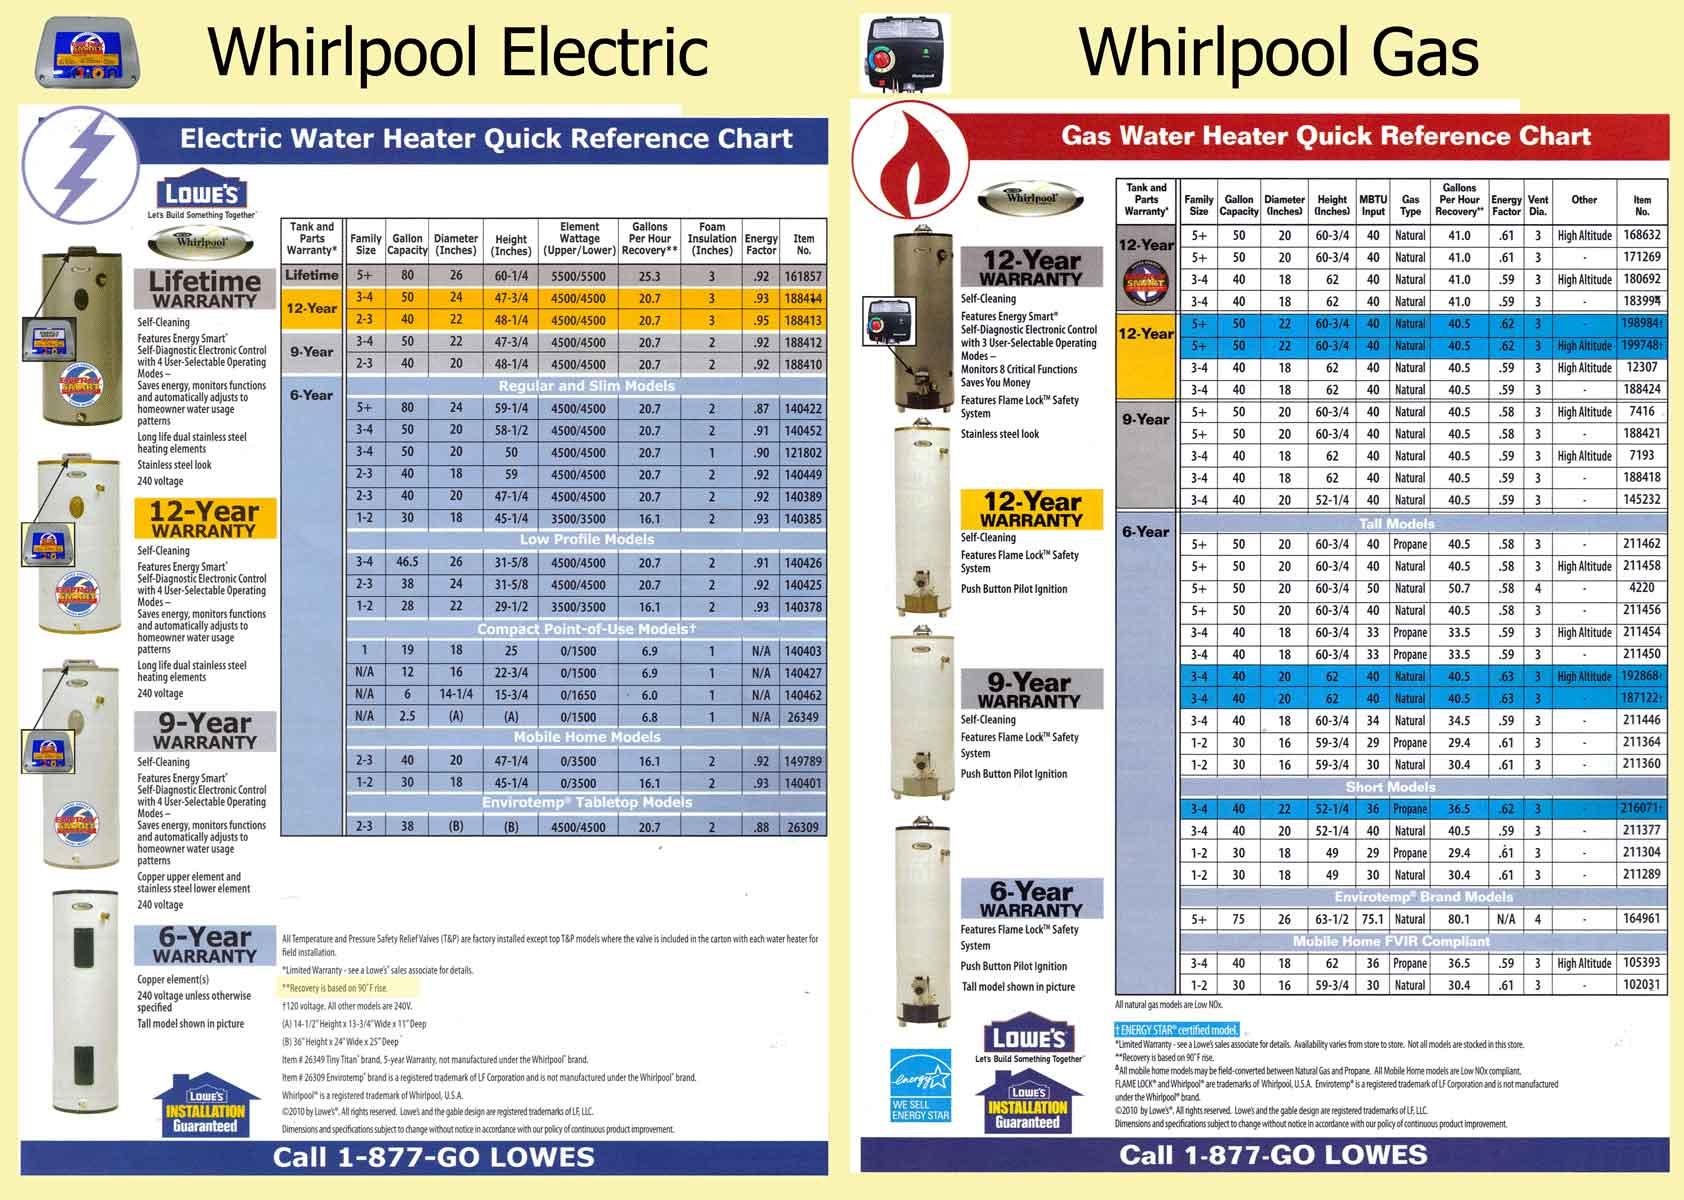 Whirlpool Energy Smart Electric Water Heater Smartboard Wiring Diagram See Reference Chart